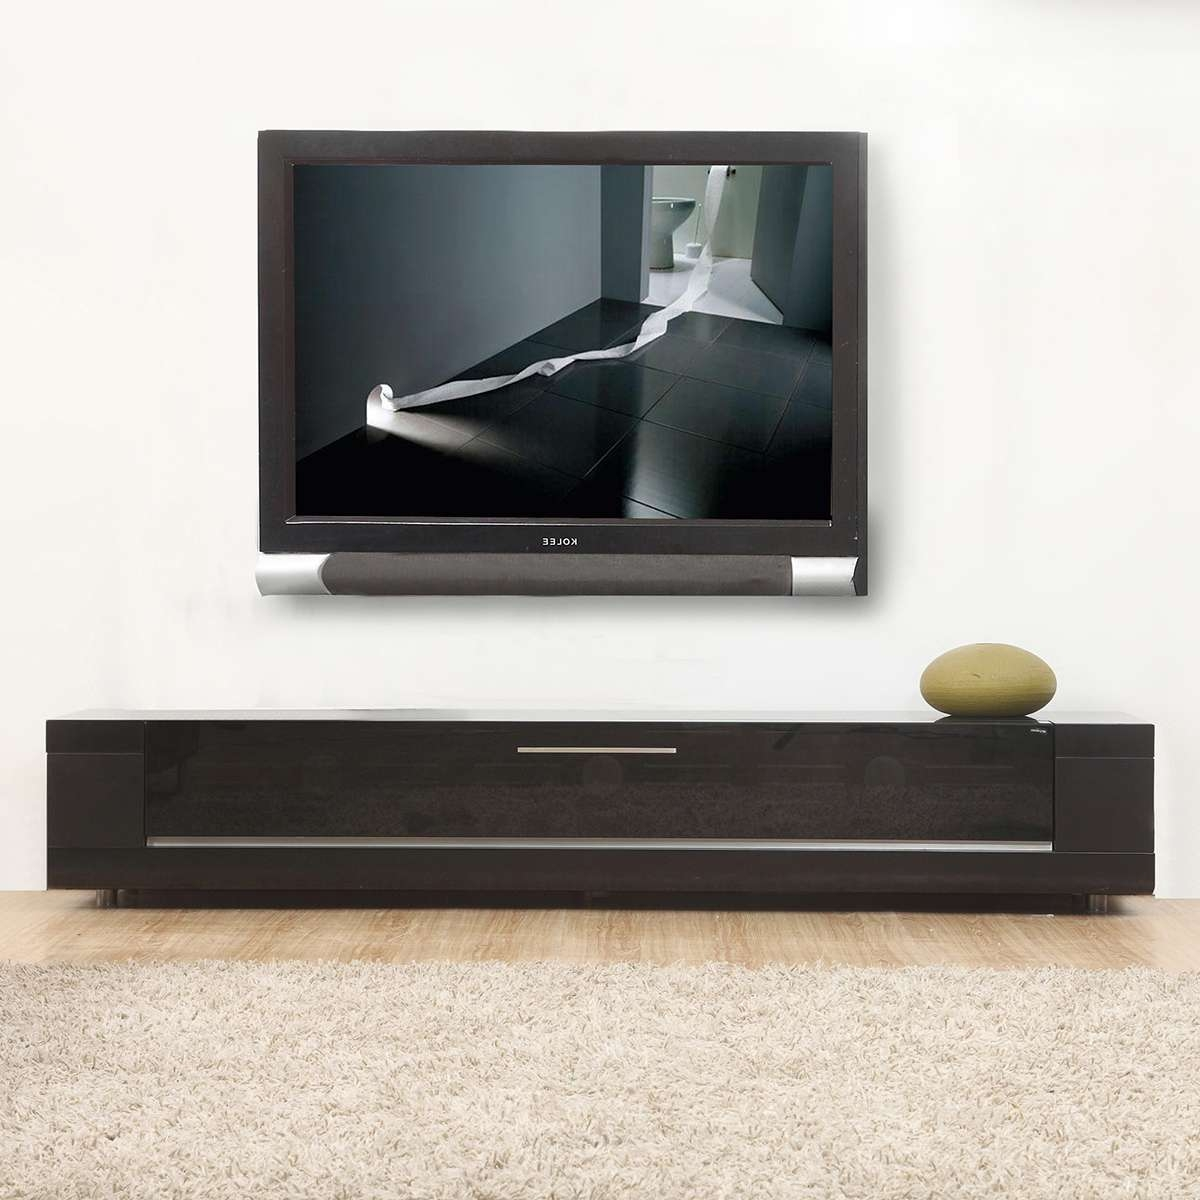 Tv Television Stands 71 & Wider At Dynamic Home Decor With Contemporary Glass Tv Stands (View 12 of 15)